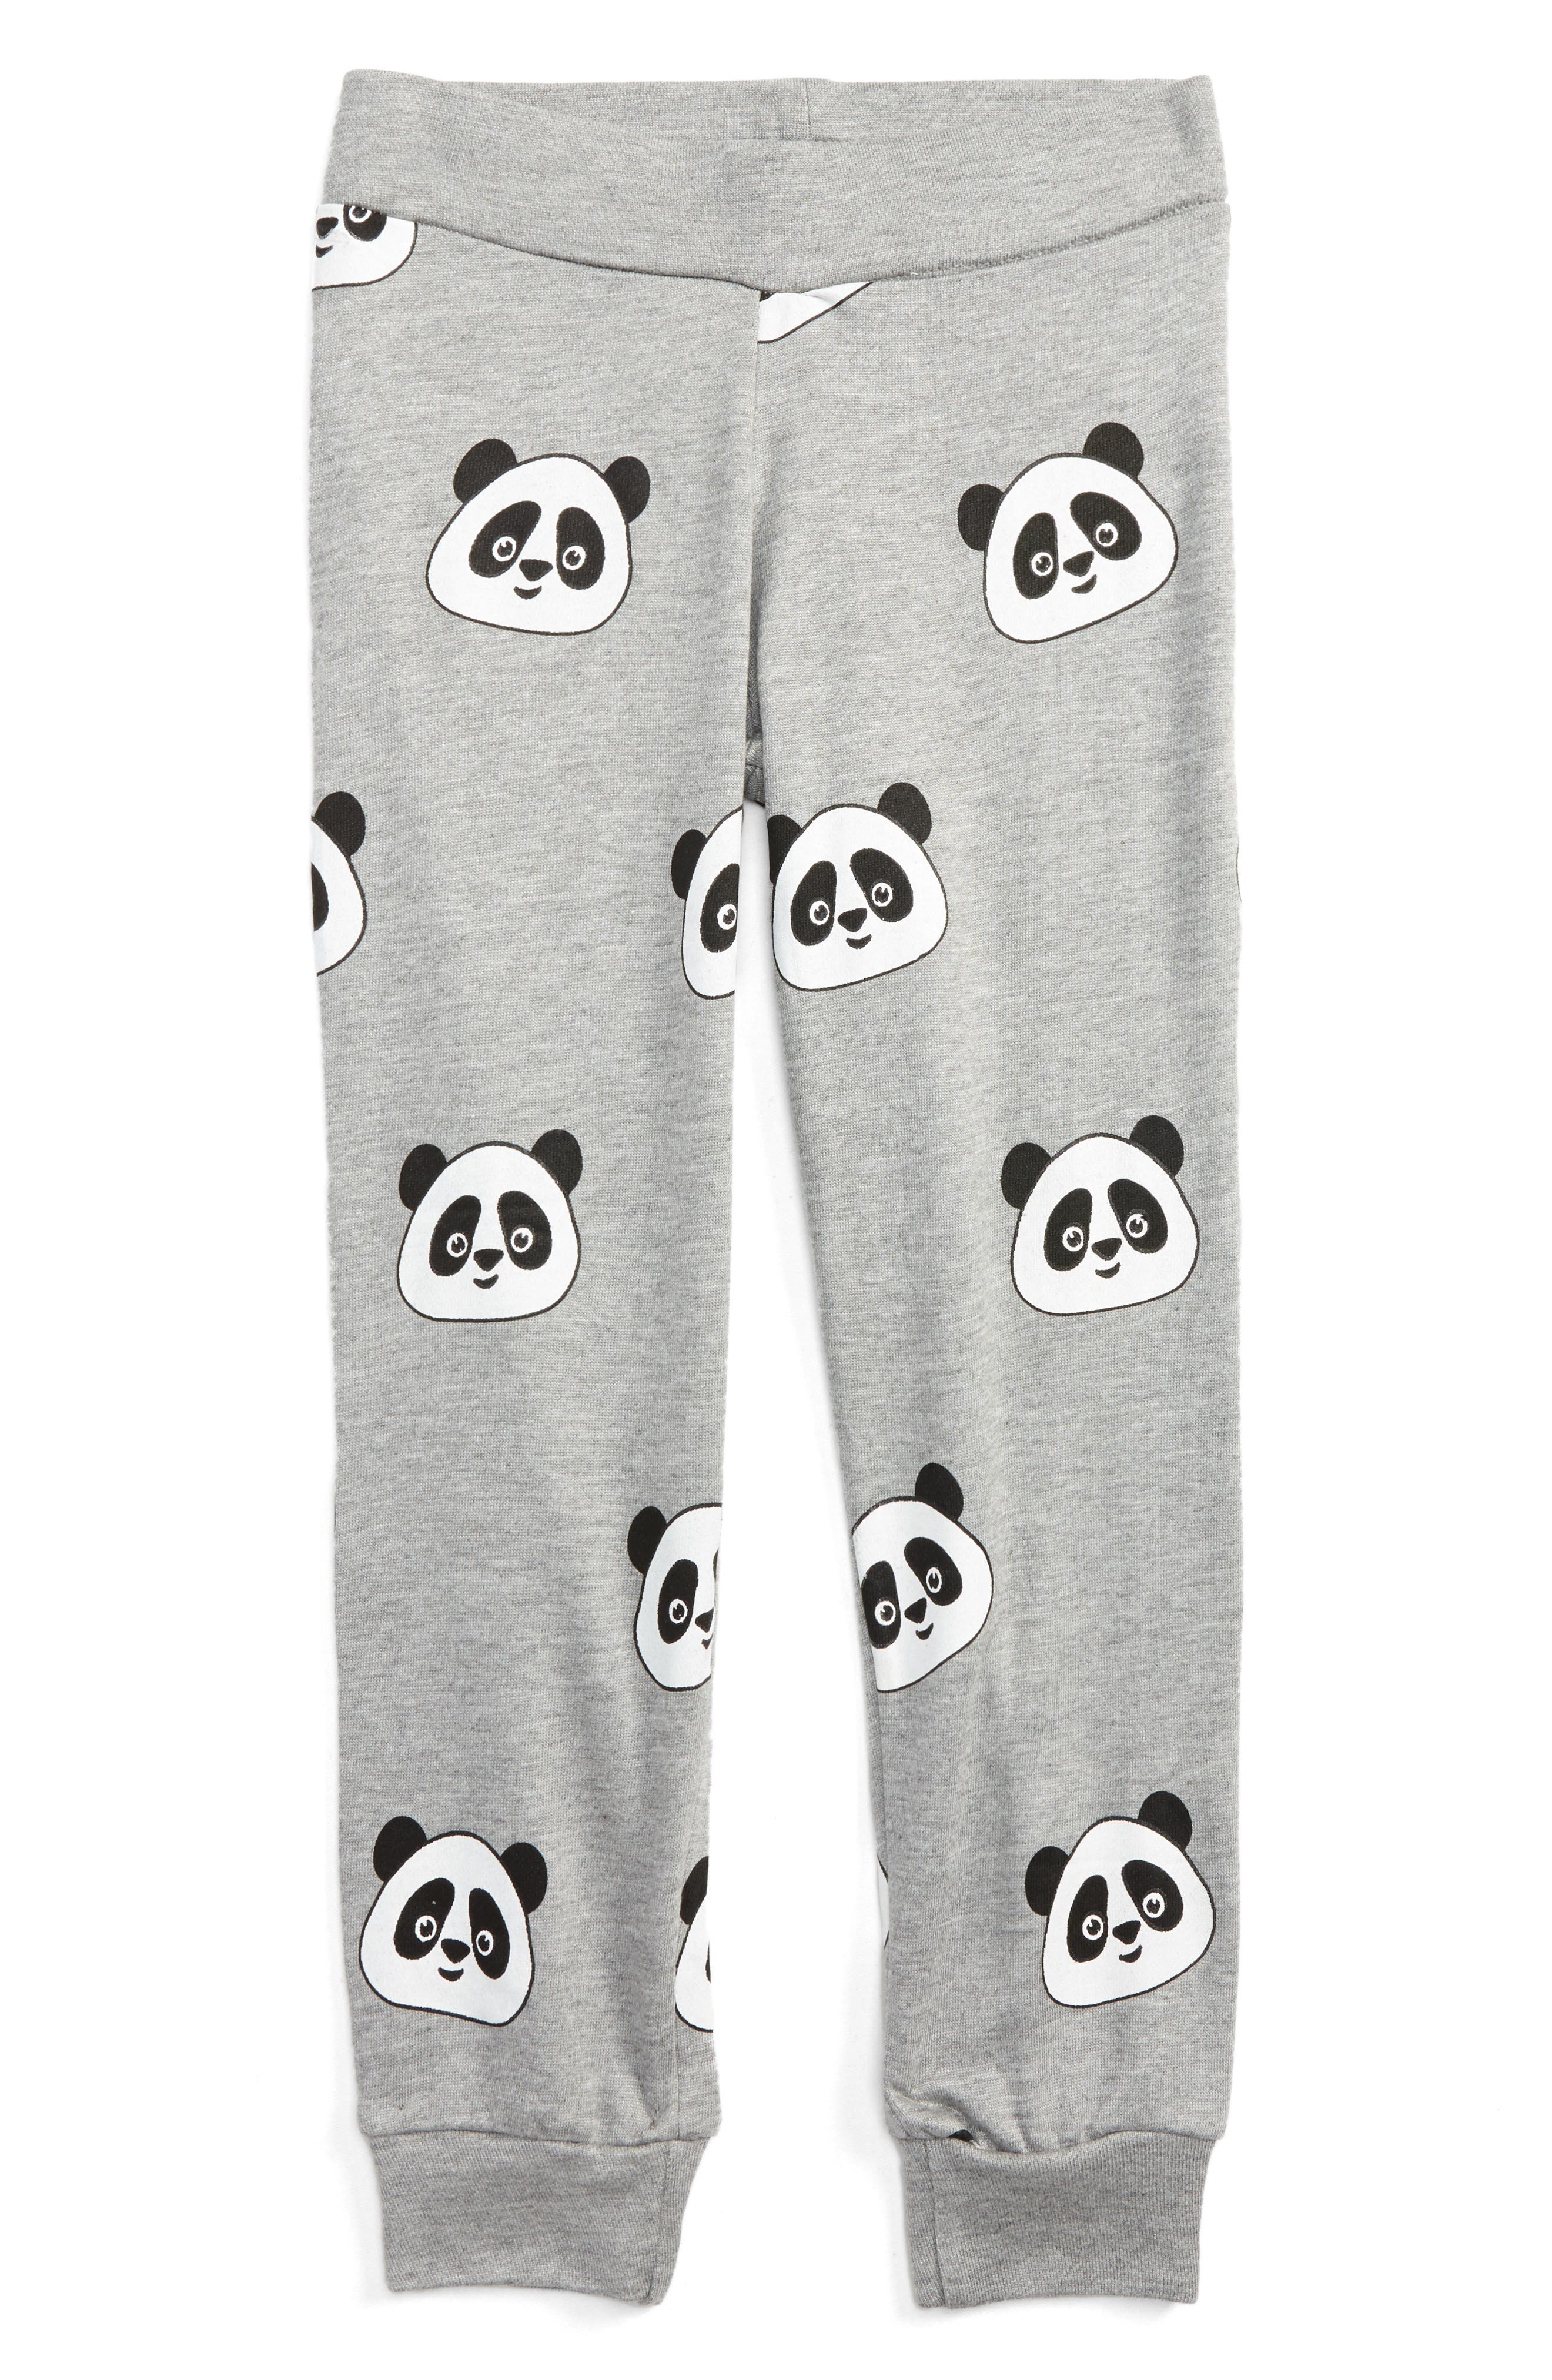 Main Image - Flowers by Zoe All Over Panda Sweatpants (Little Girls & Big Girls)